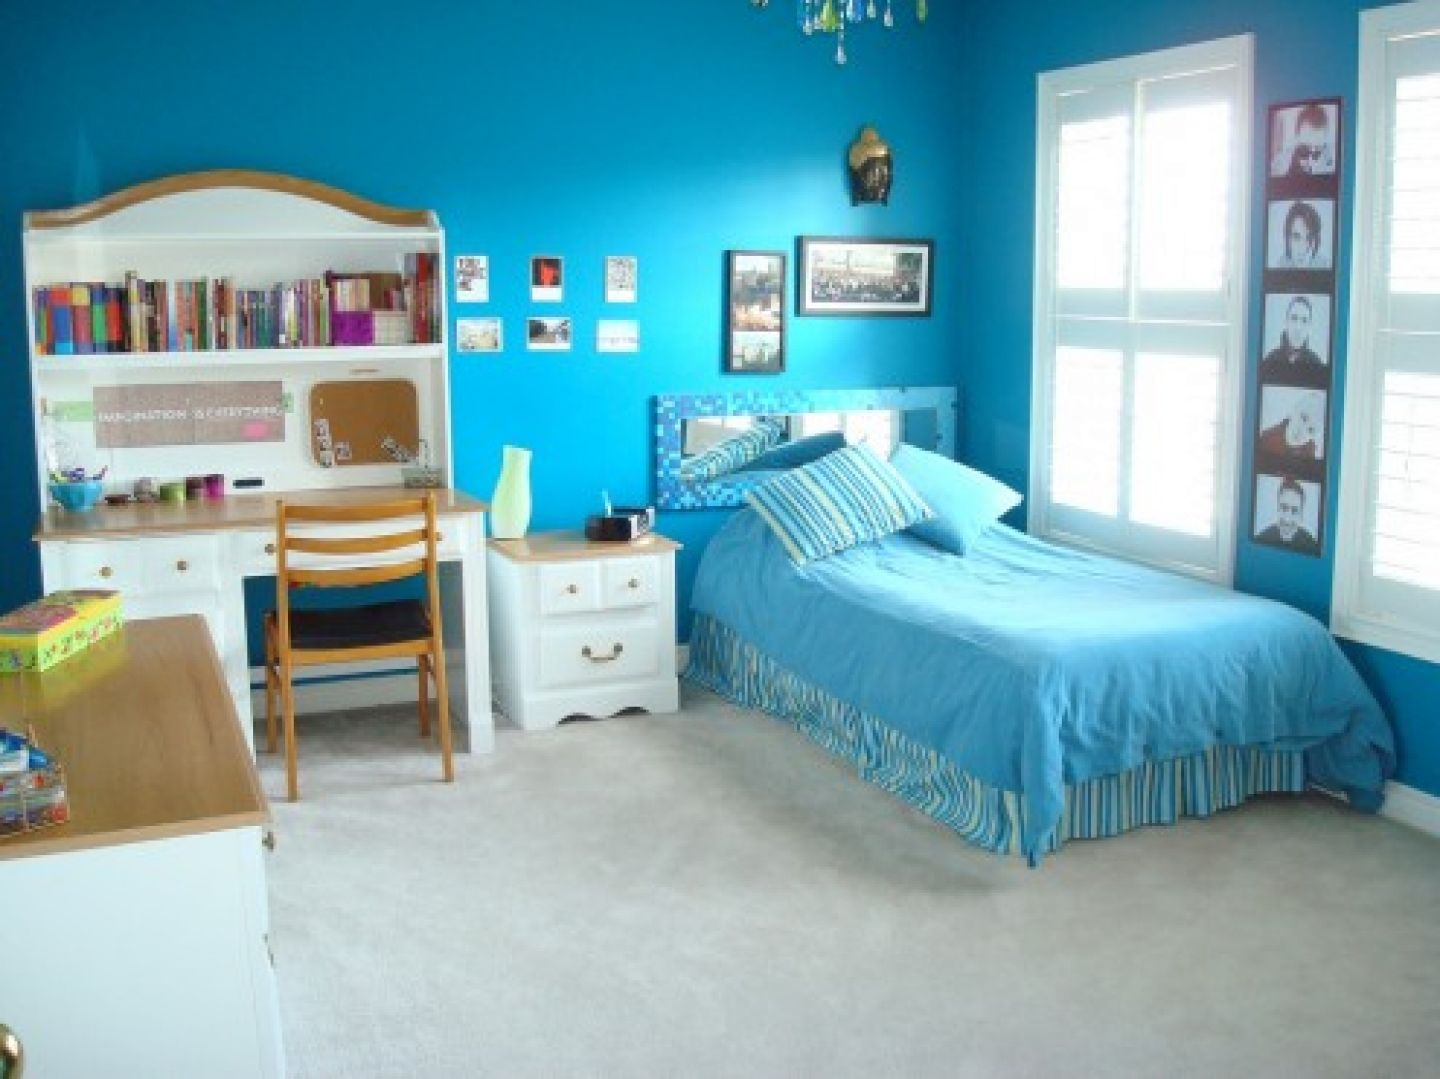 Blue bedroom sets for girls - Awesome Teen Girl Bedroom Decorating Ideas With Blue Bedding